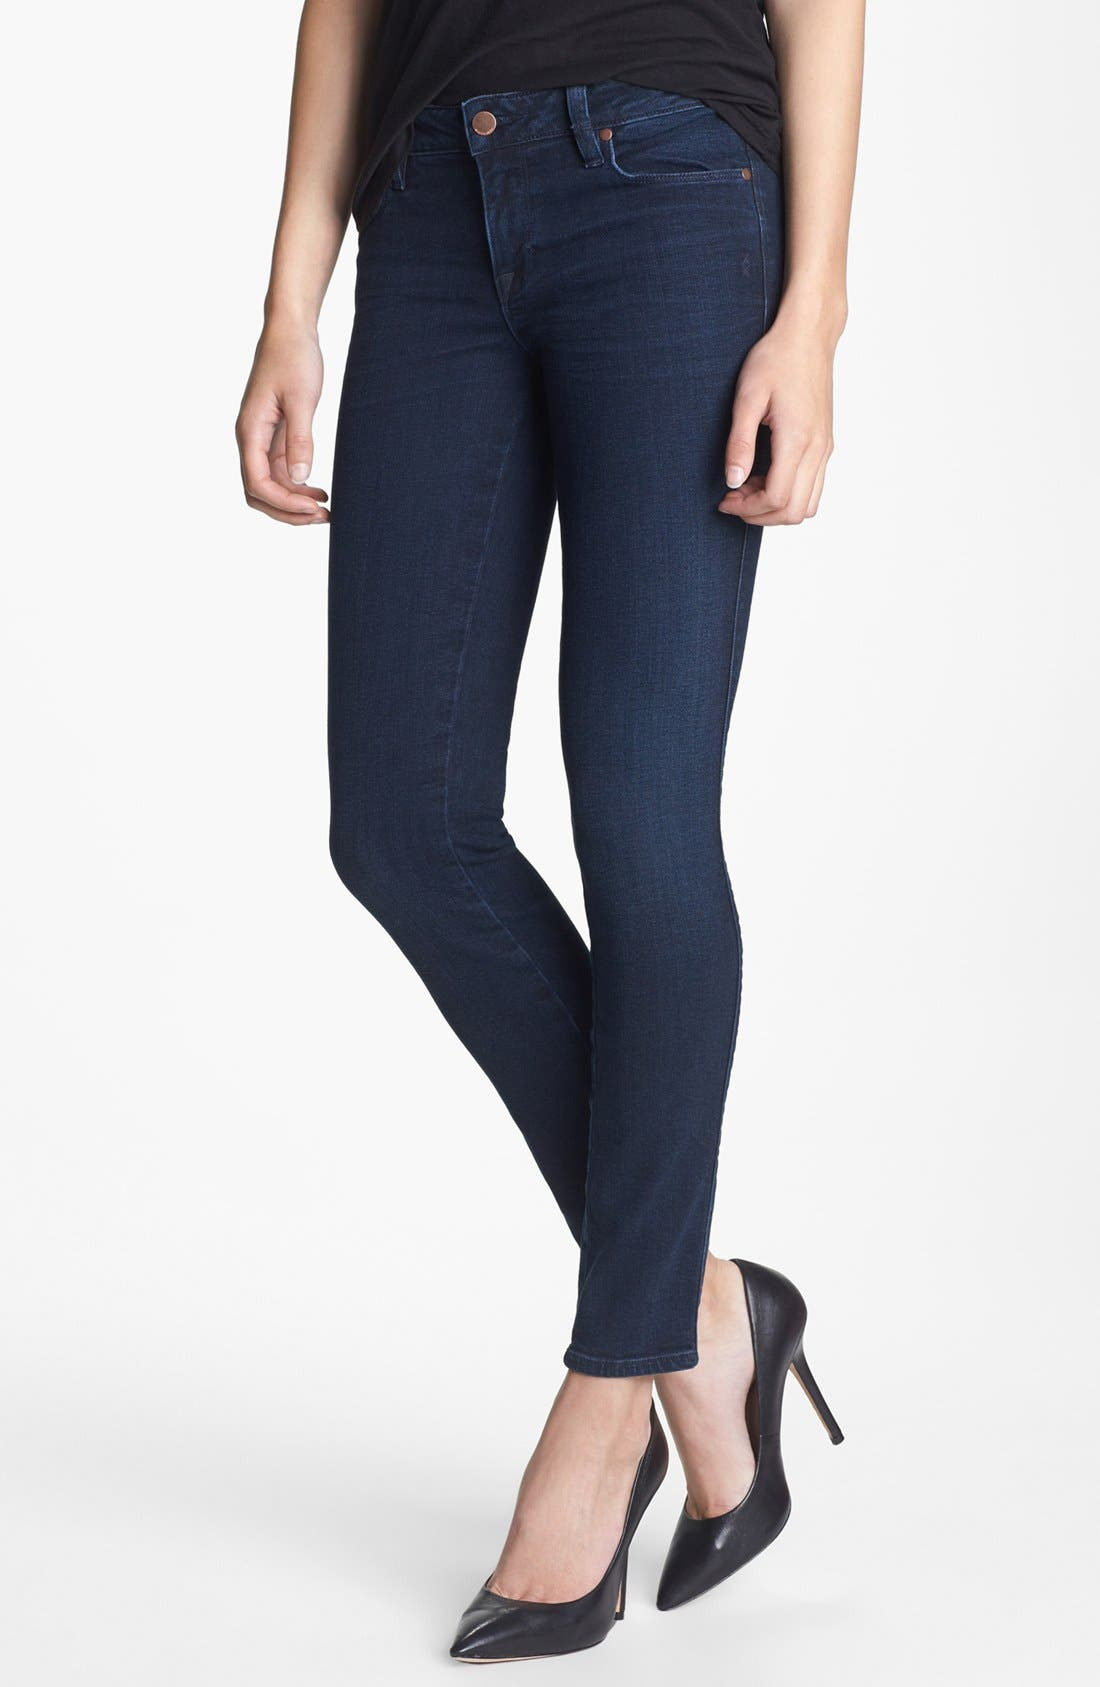 'The Shya' Cigarette Skinny Jeans,                         Main,                         color, 401